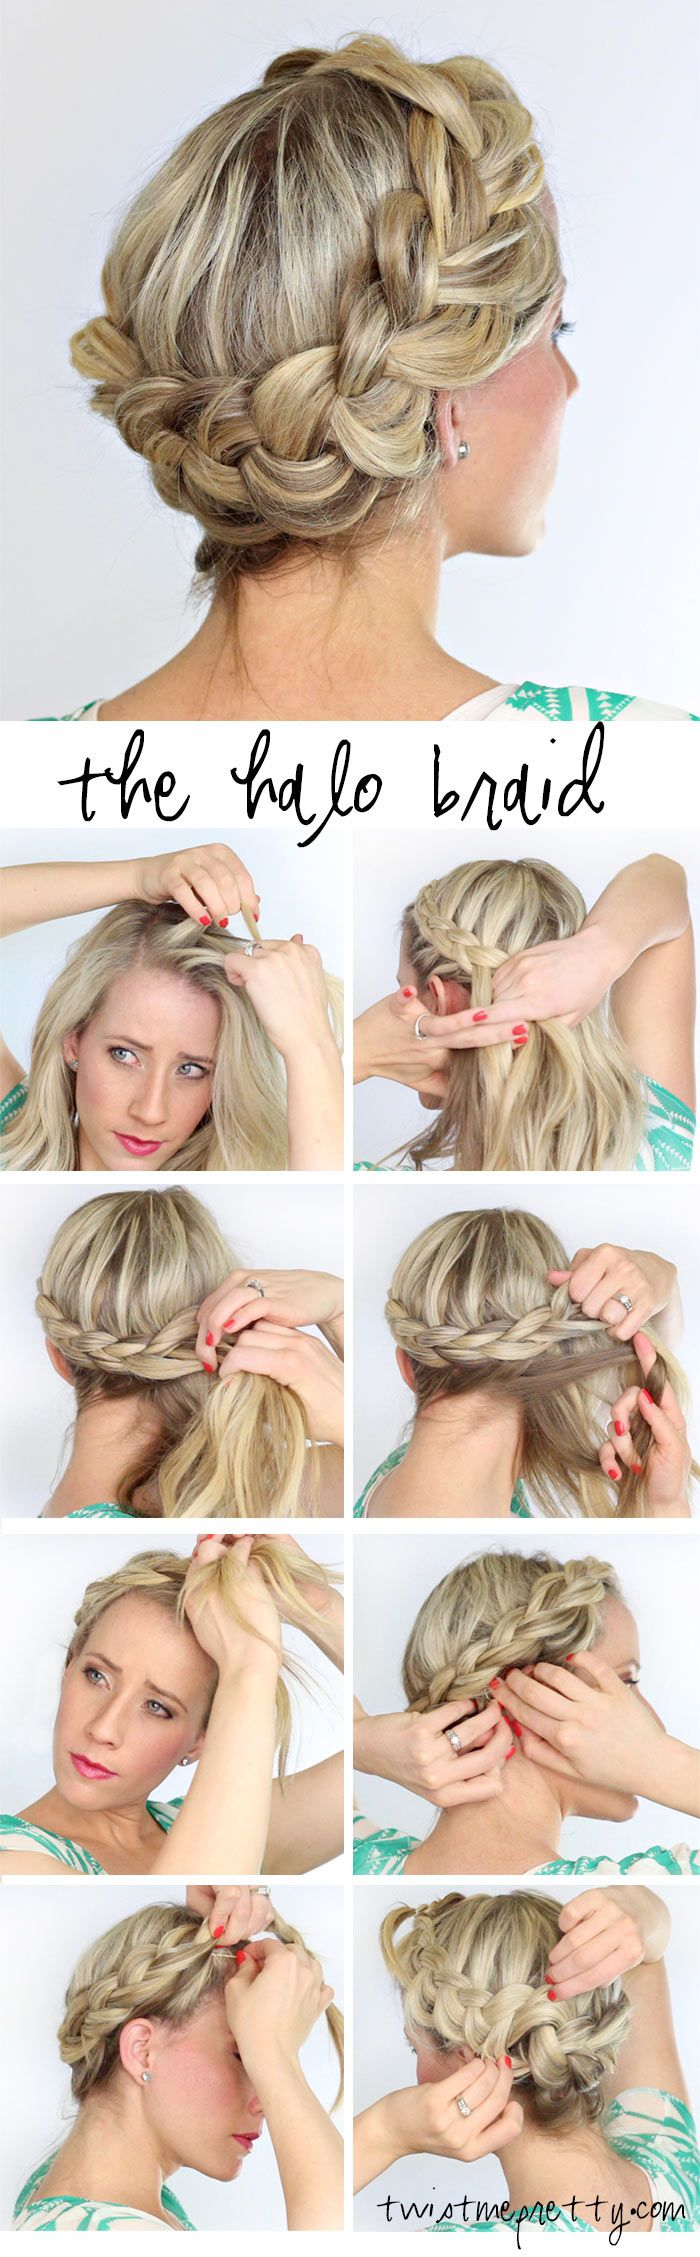 Cool 1000 Ideas About Halo Braid On Pinterest Braids Protective Short Hairstyles For Black Women Fulllsitofus